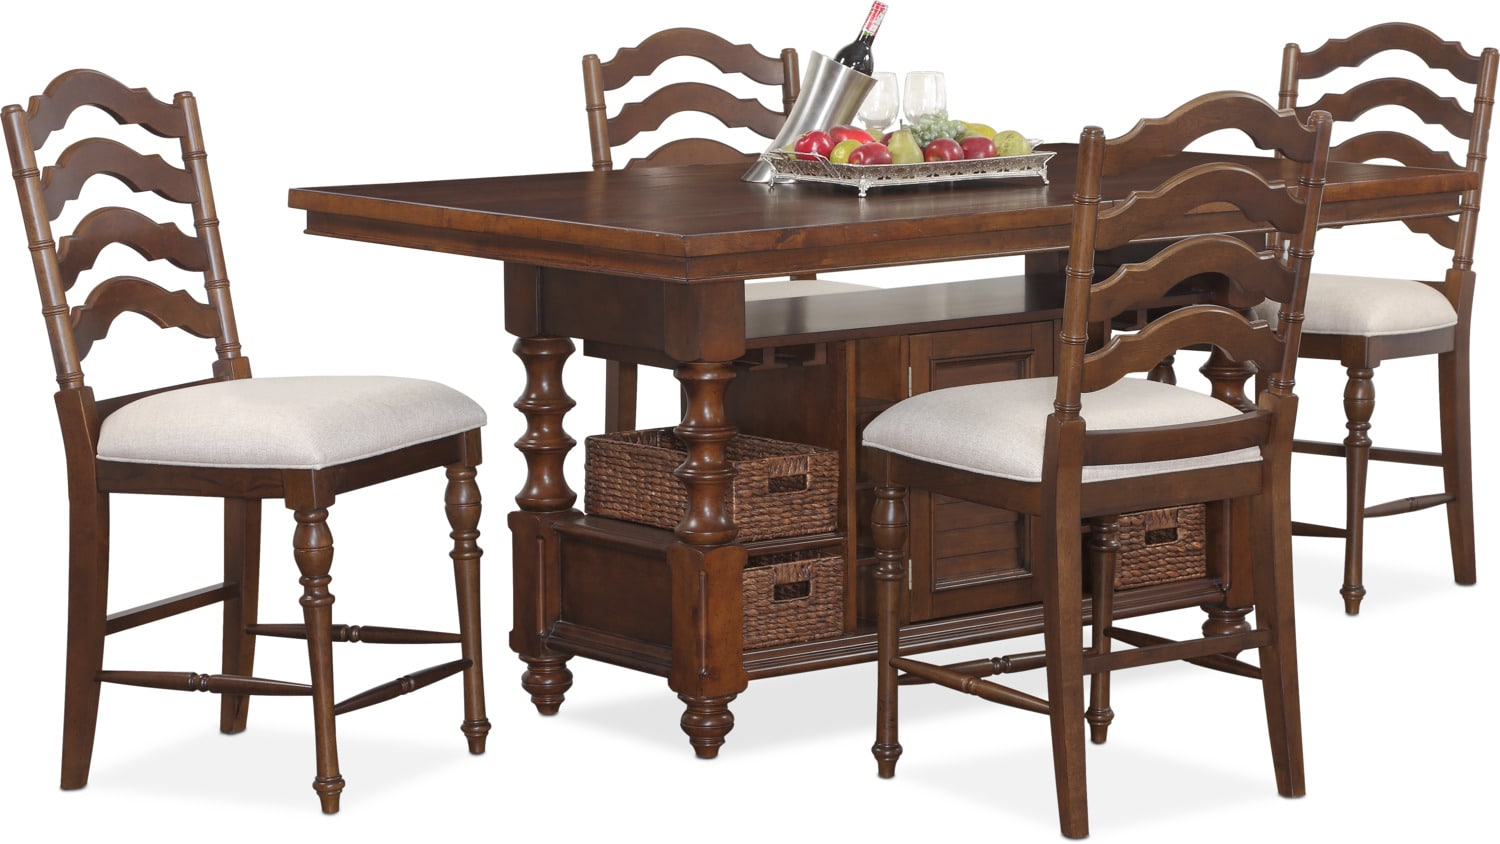 Charleston Counter Height Dining Table And 4 Stools   Tobacco